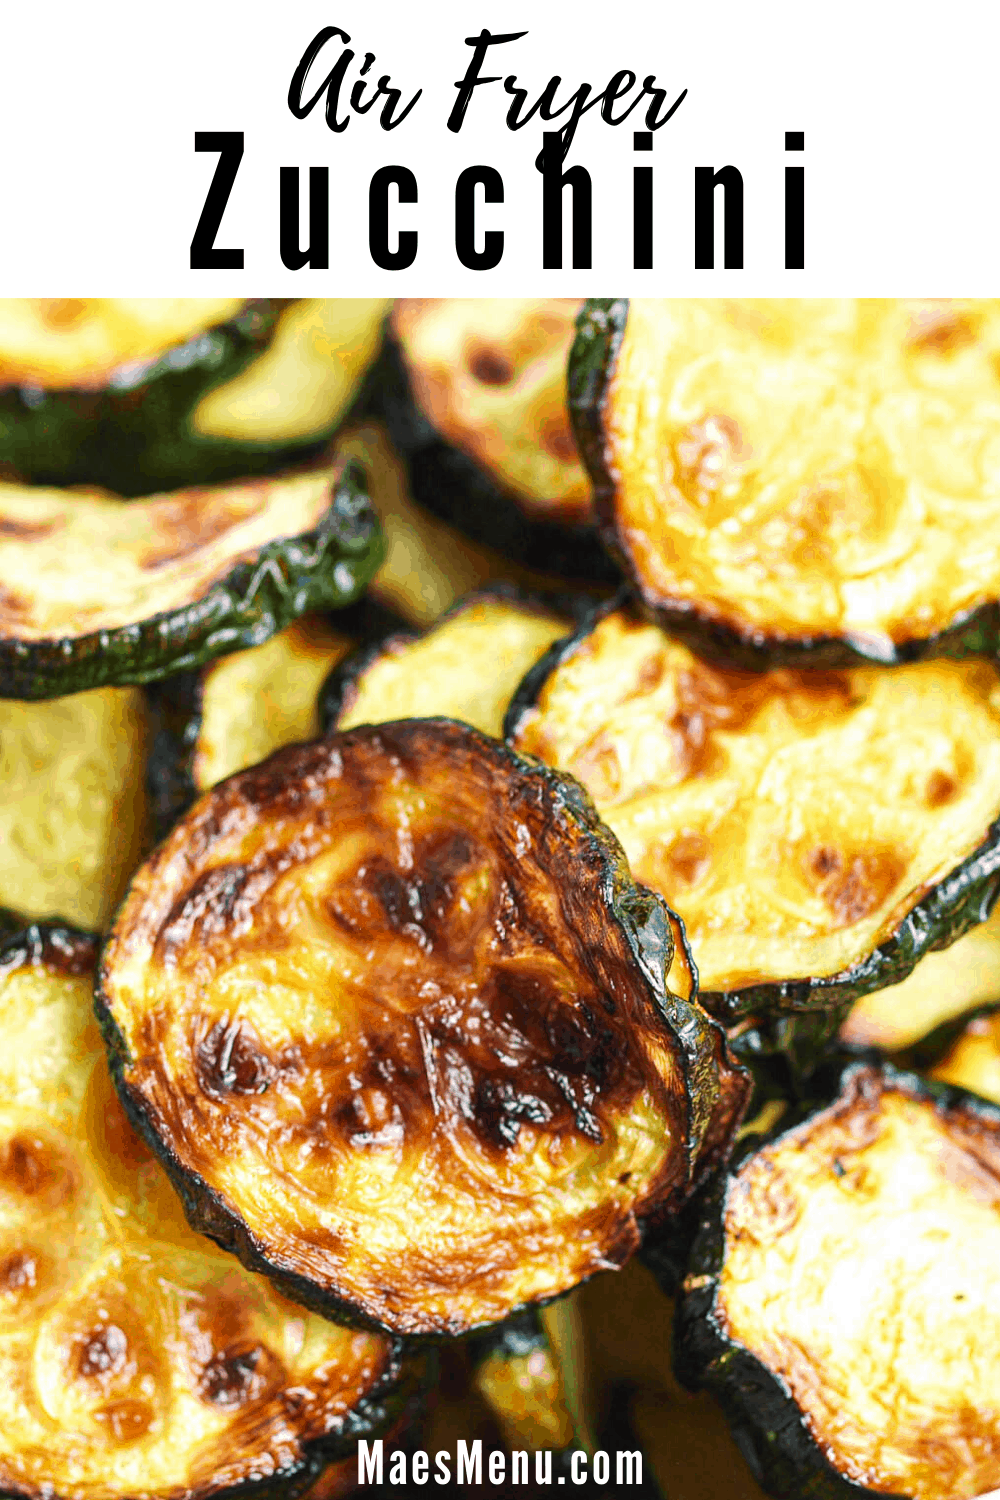 A pinterest pin for air fryer zucchini with an up-close picture of fried zucchini